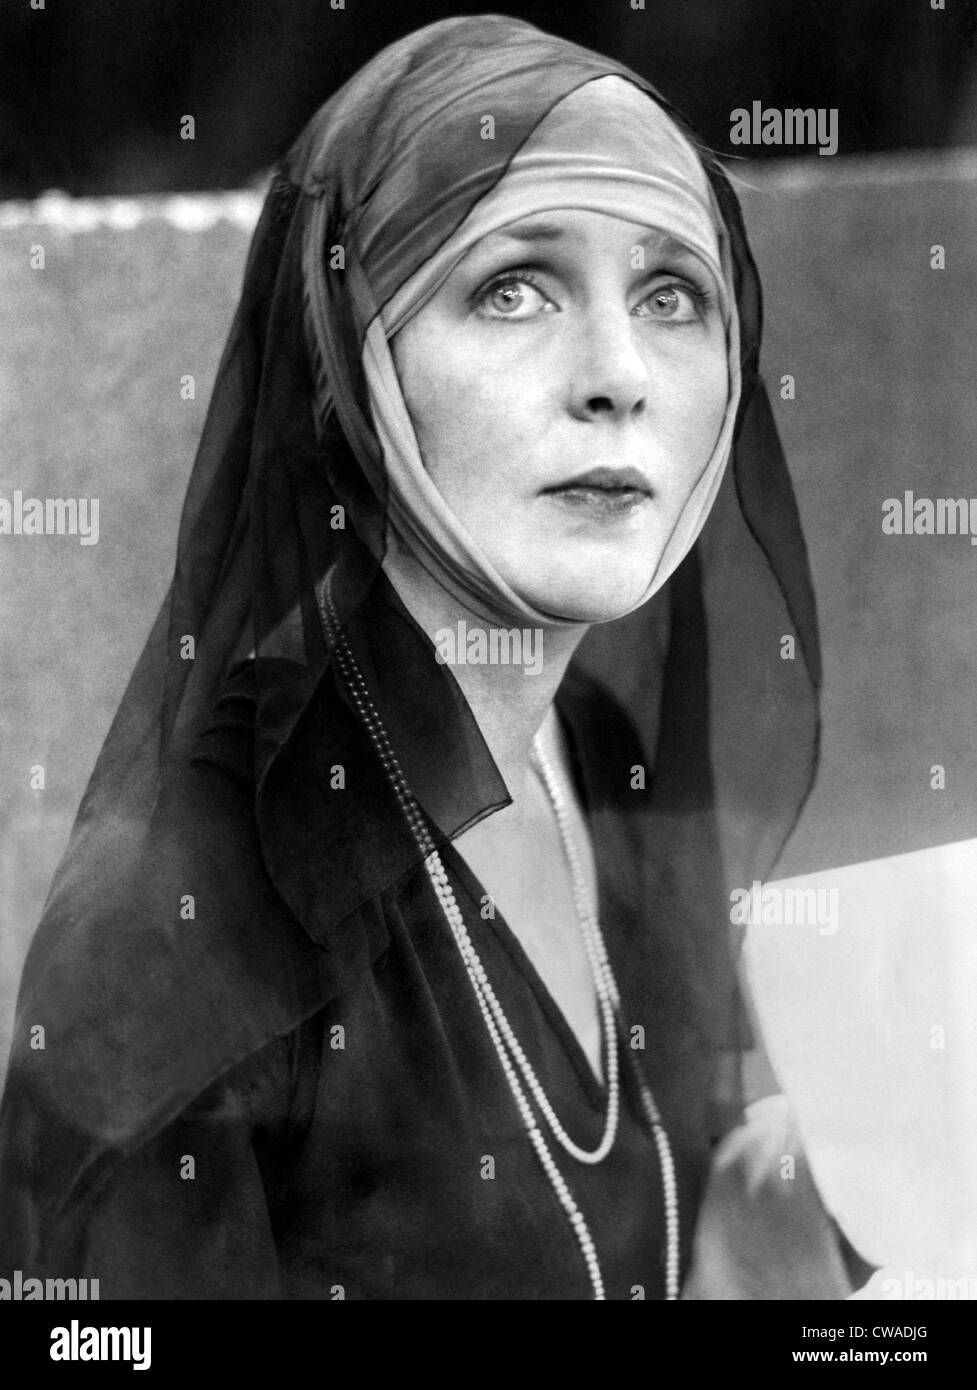 THE MIRACLE, Actress Lady Diana Duff Cooper as the  Madonna, December 4, 1923. Courtesy CSU Archives/Everett Collection. - Stock Image